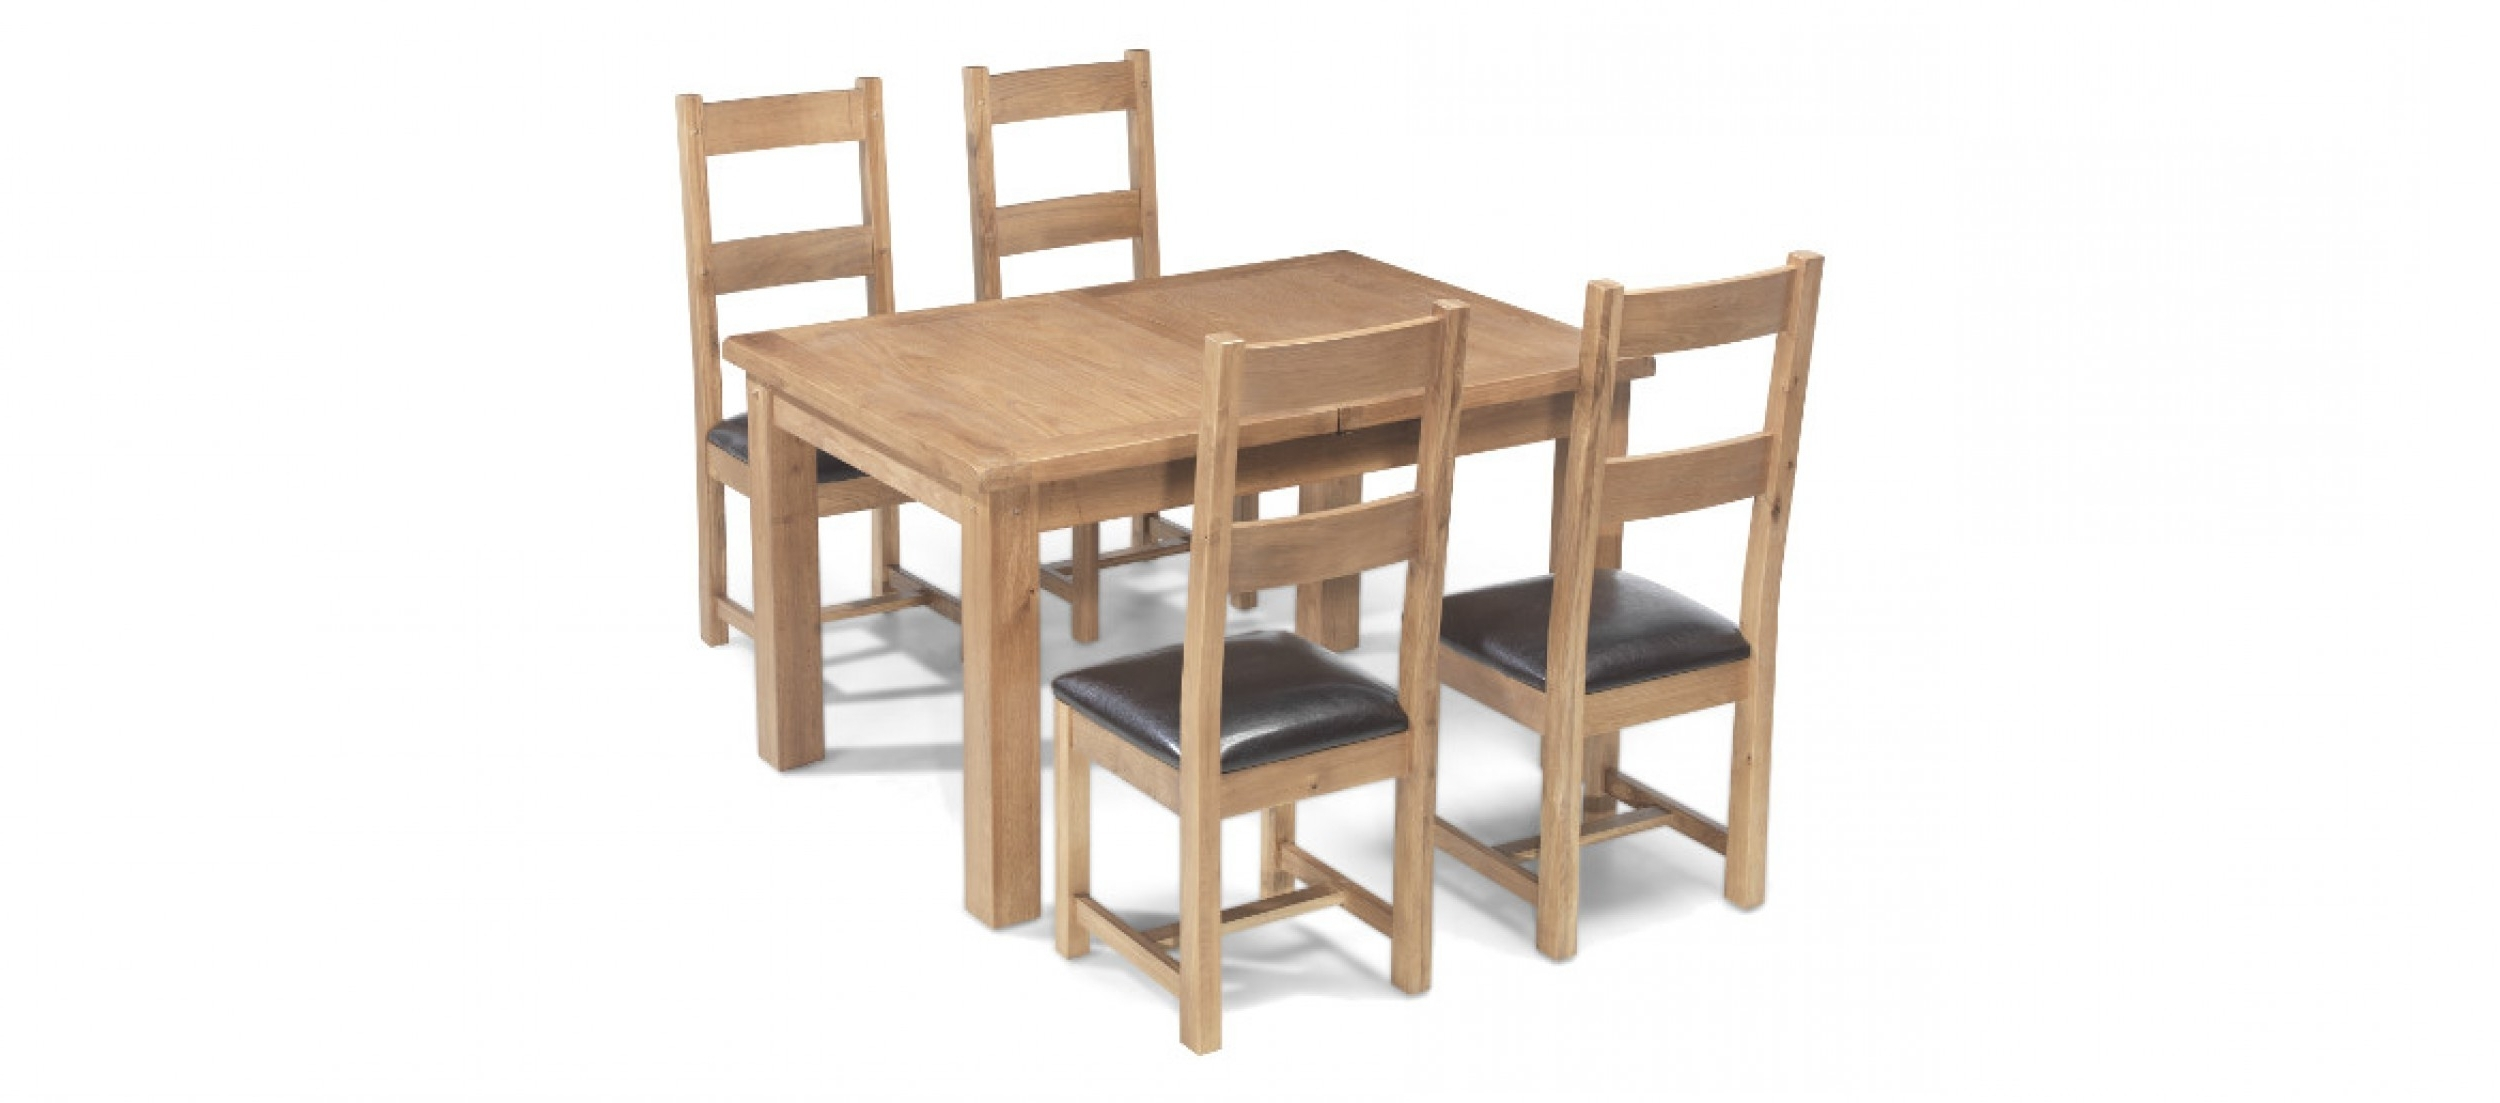 Quercus Pertaining To Most Up To Date Extendable Oak Dining Tables And Chairs (View 21 of 25)